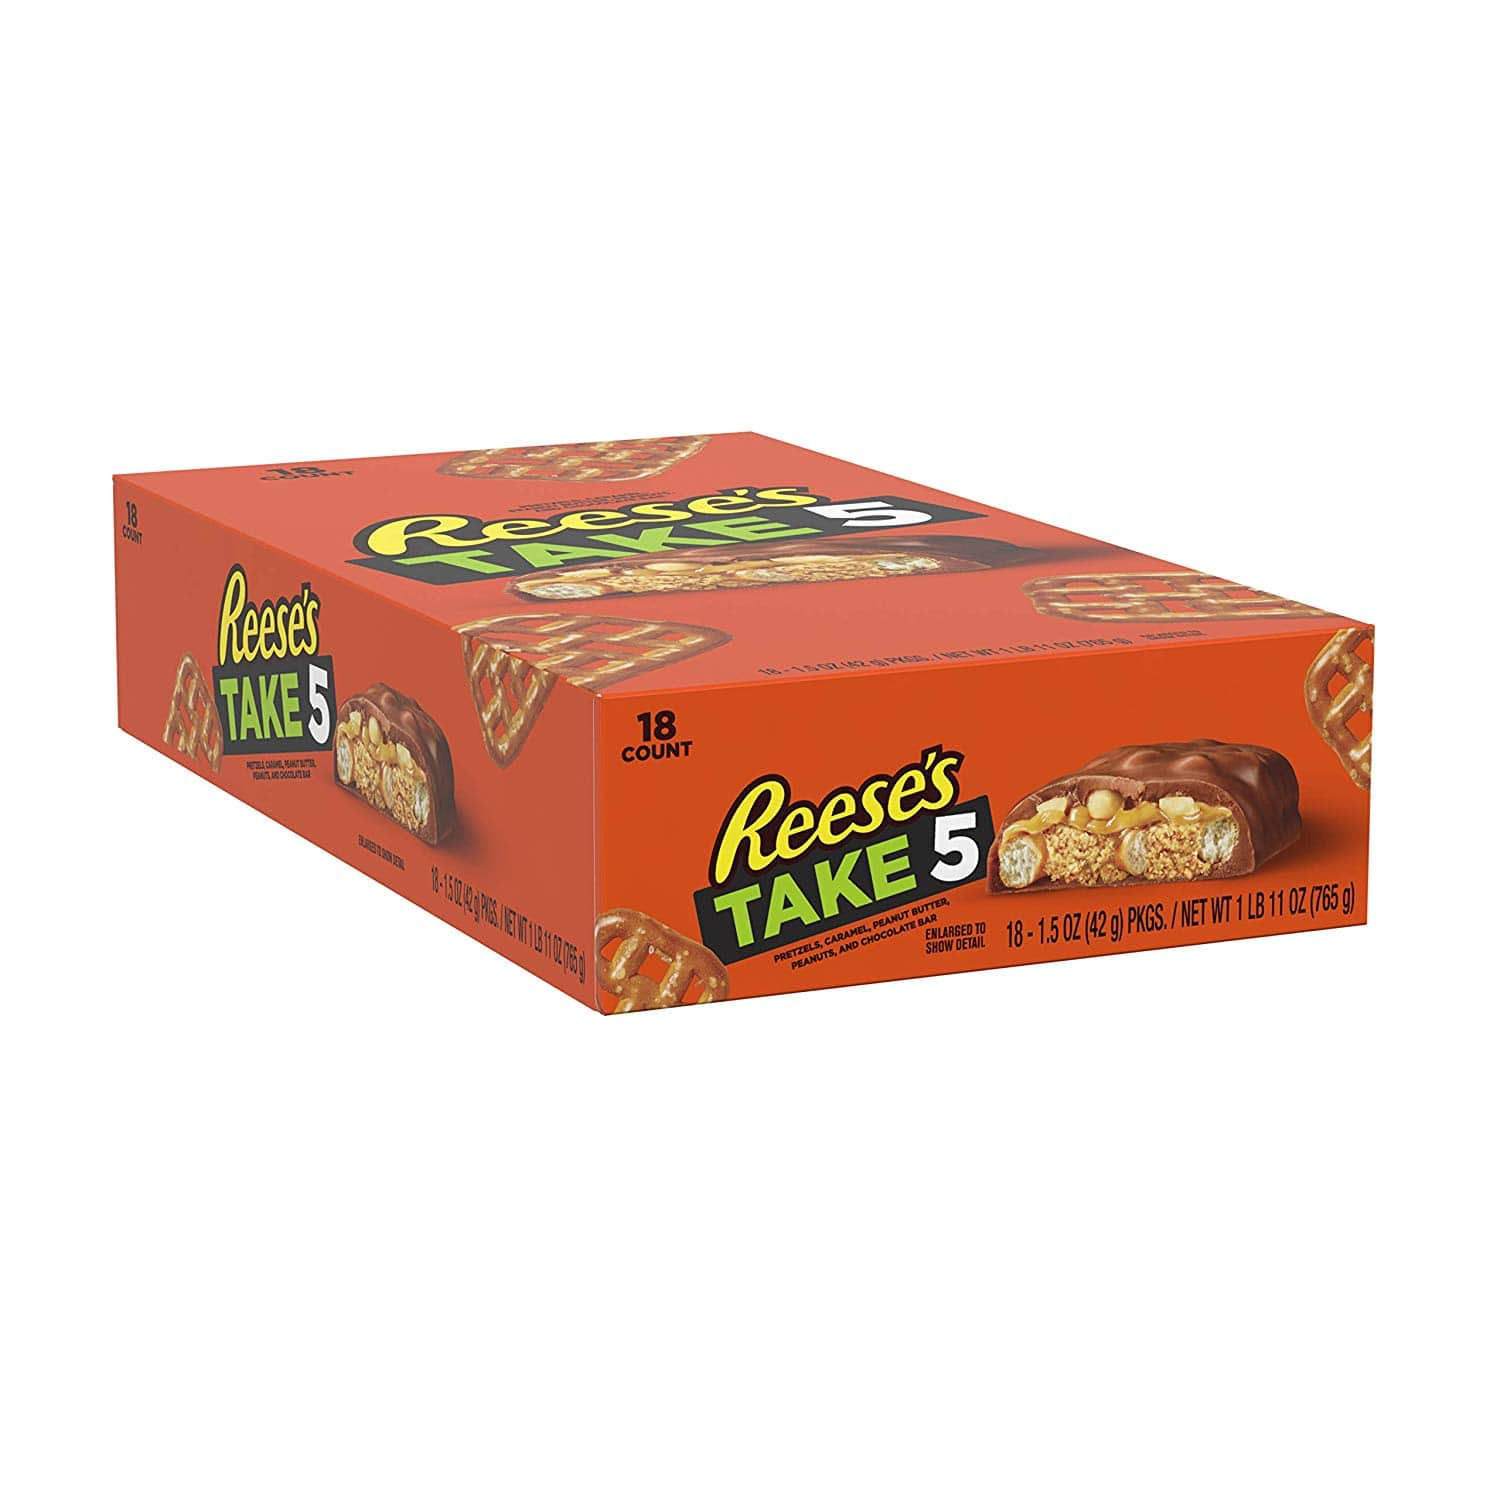 18-Count 1.5oz. Reese's TAKE 5 Peanut Butter Milk Chocolate Candy Bars